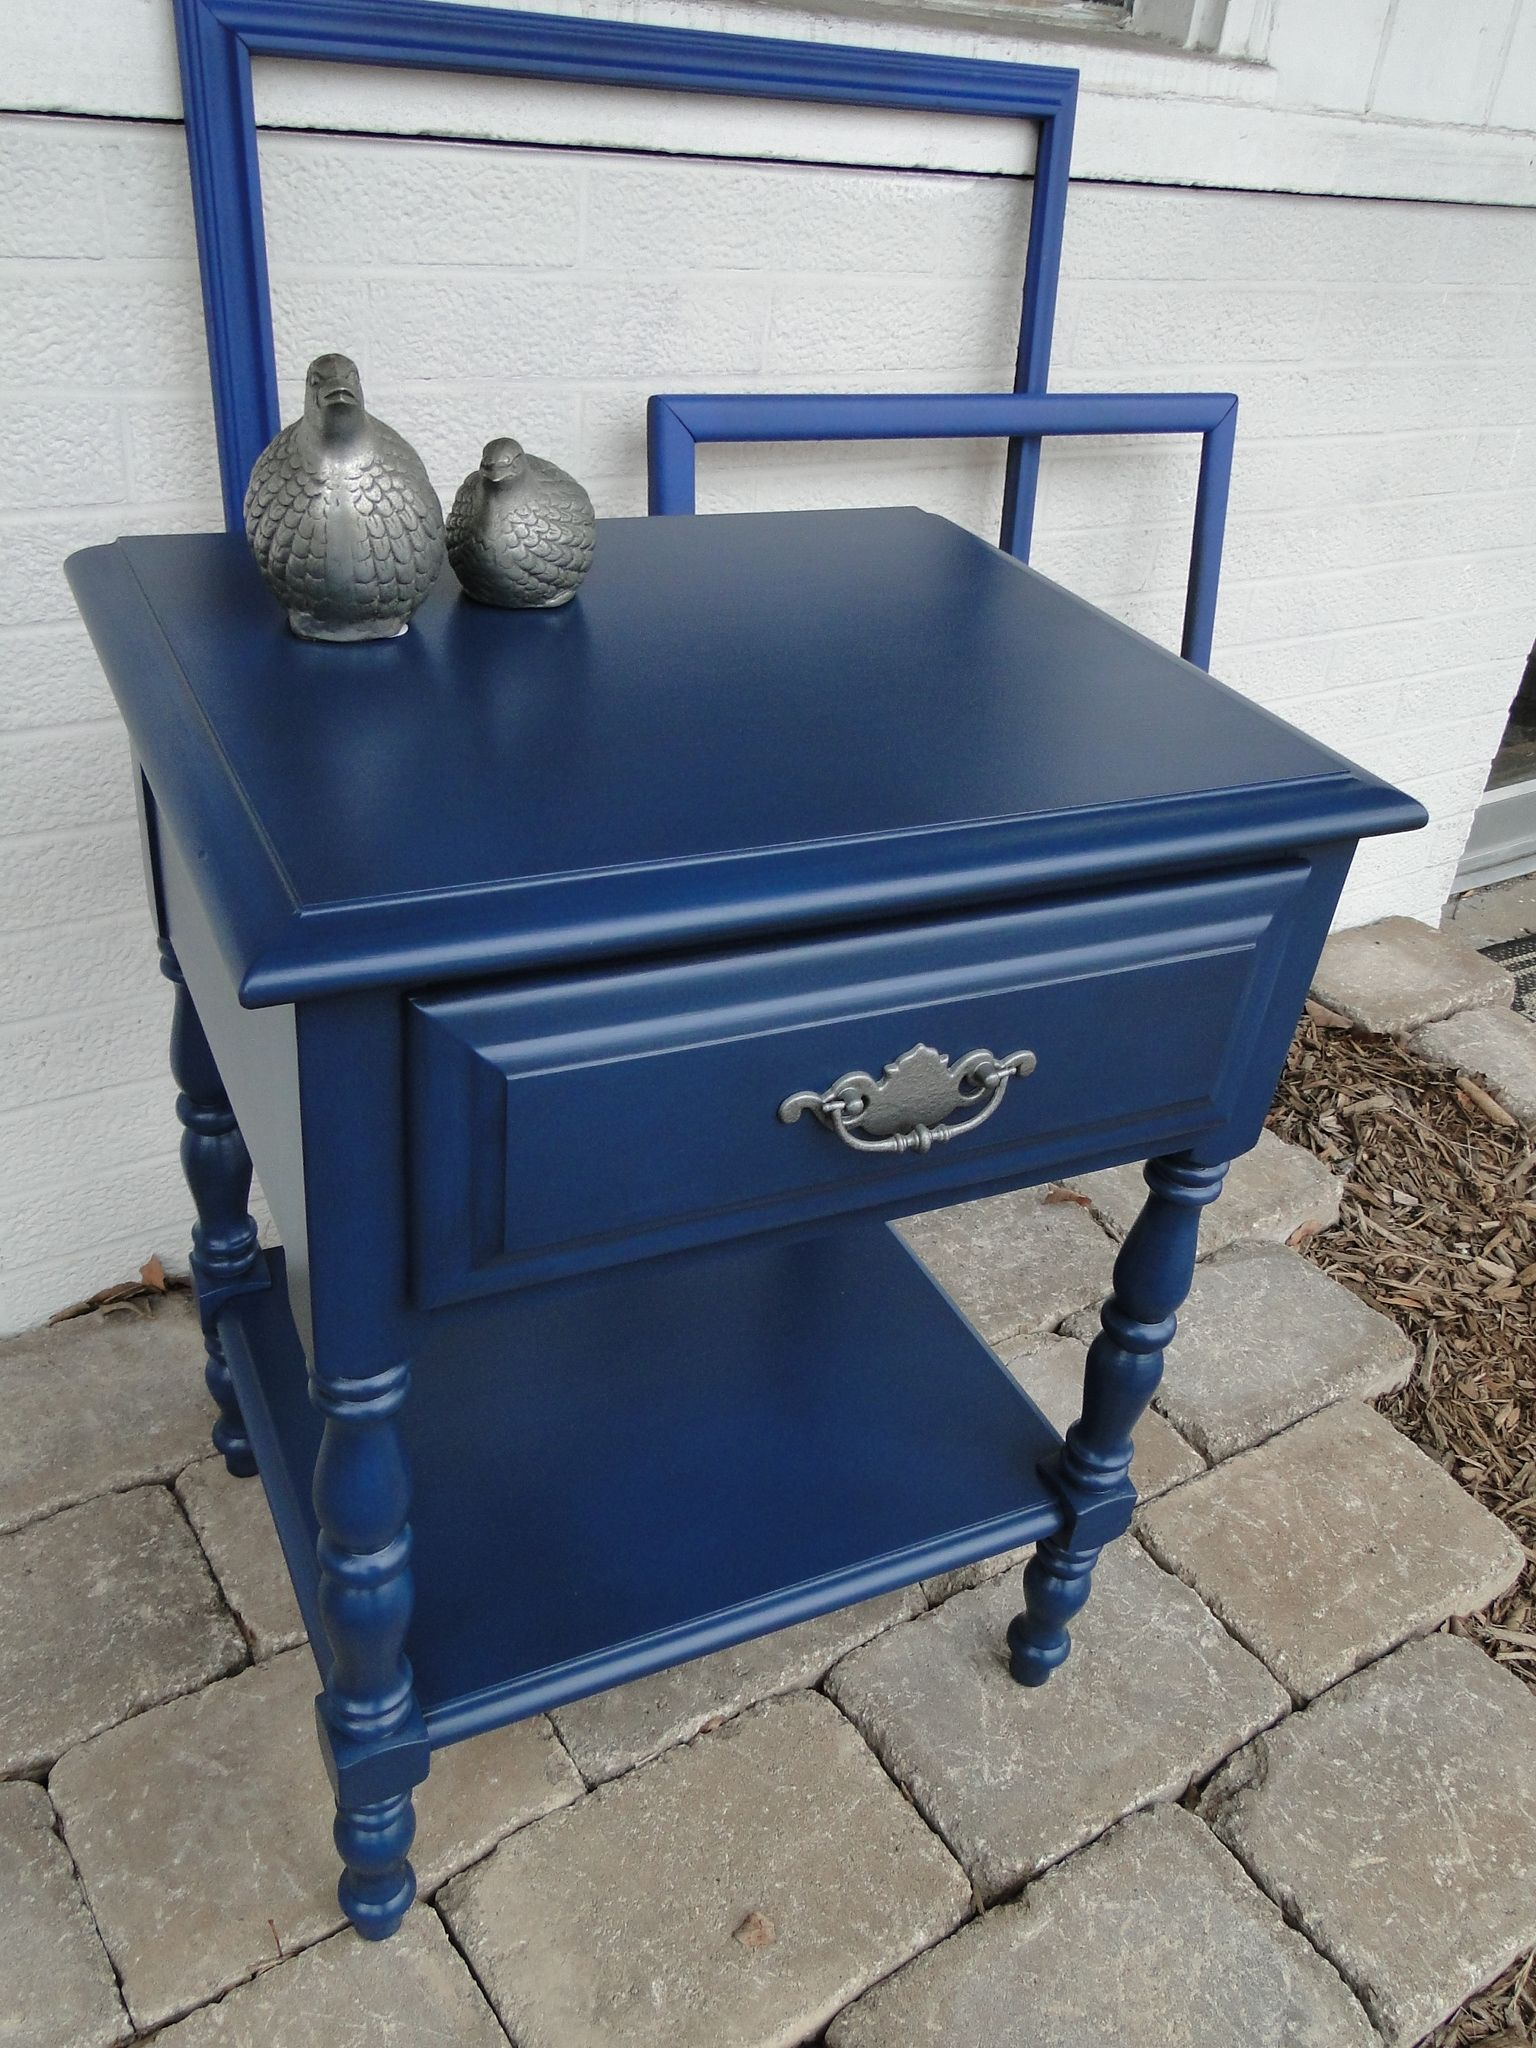 I Love How This Dark Navy Blue Pairs With The Silver Hardware This Is A Very Sturdy Little